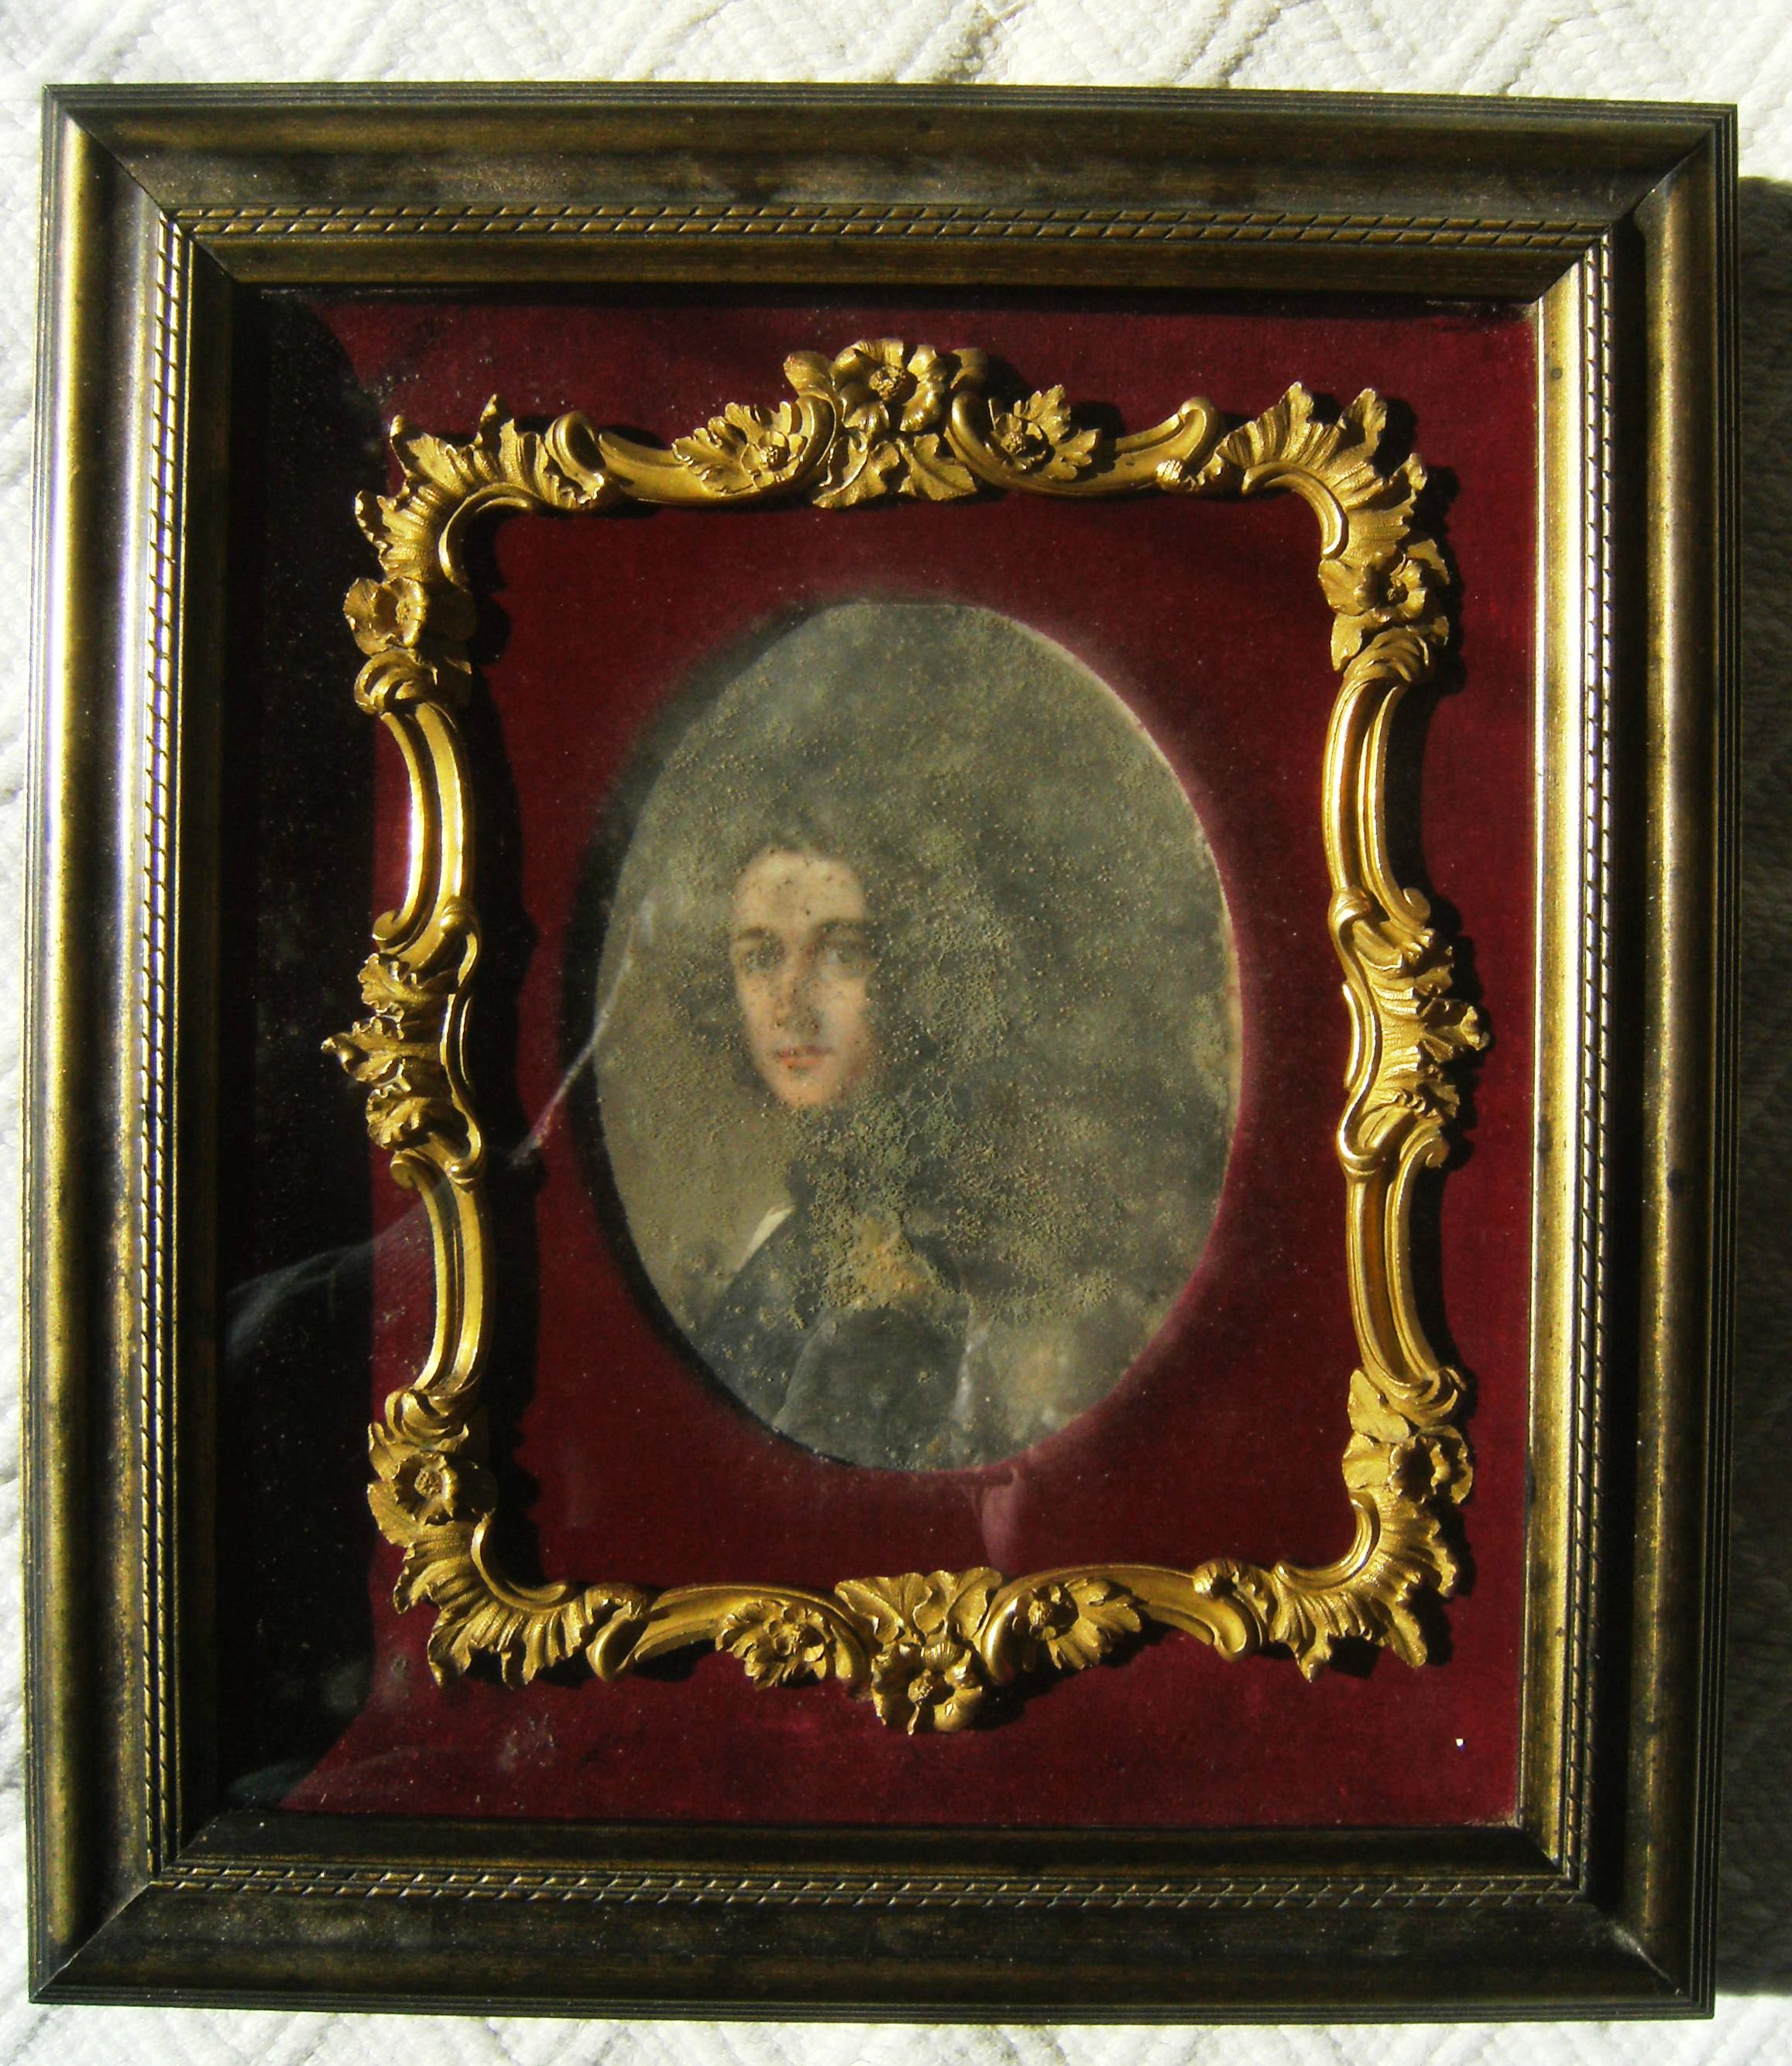 The portrait when it was covered in mould